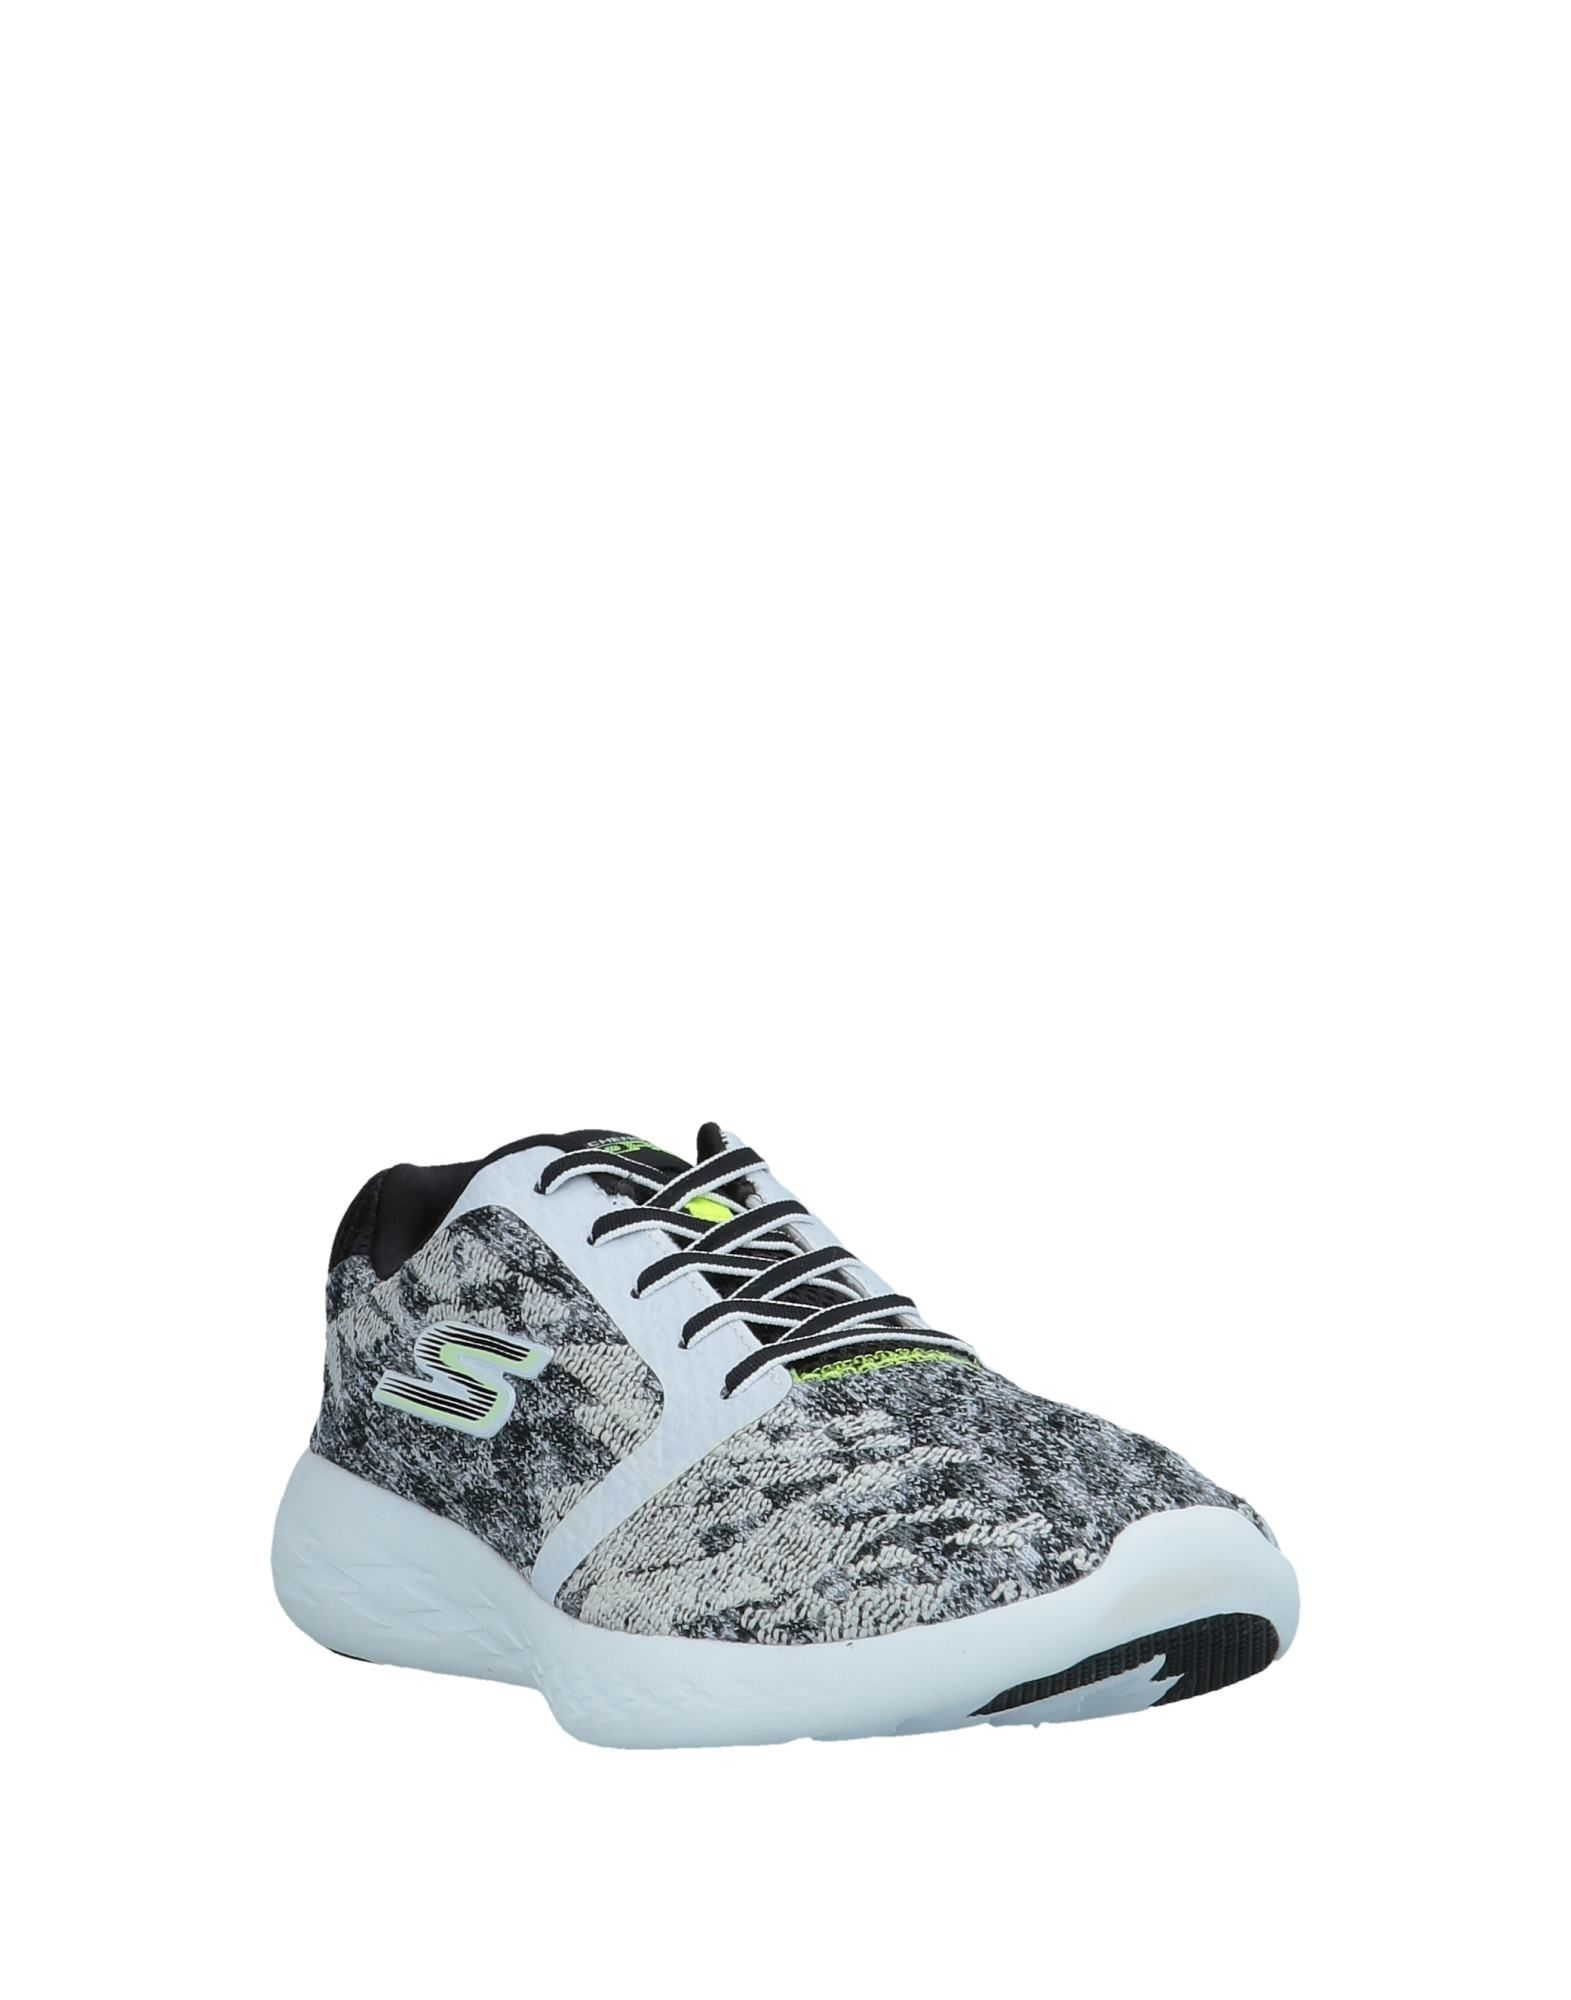 Skechers Sneakers - Women Skechers Sneakers Sneakers Sneakers online on  United Kingdom - 11554861BF 57a752